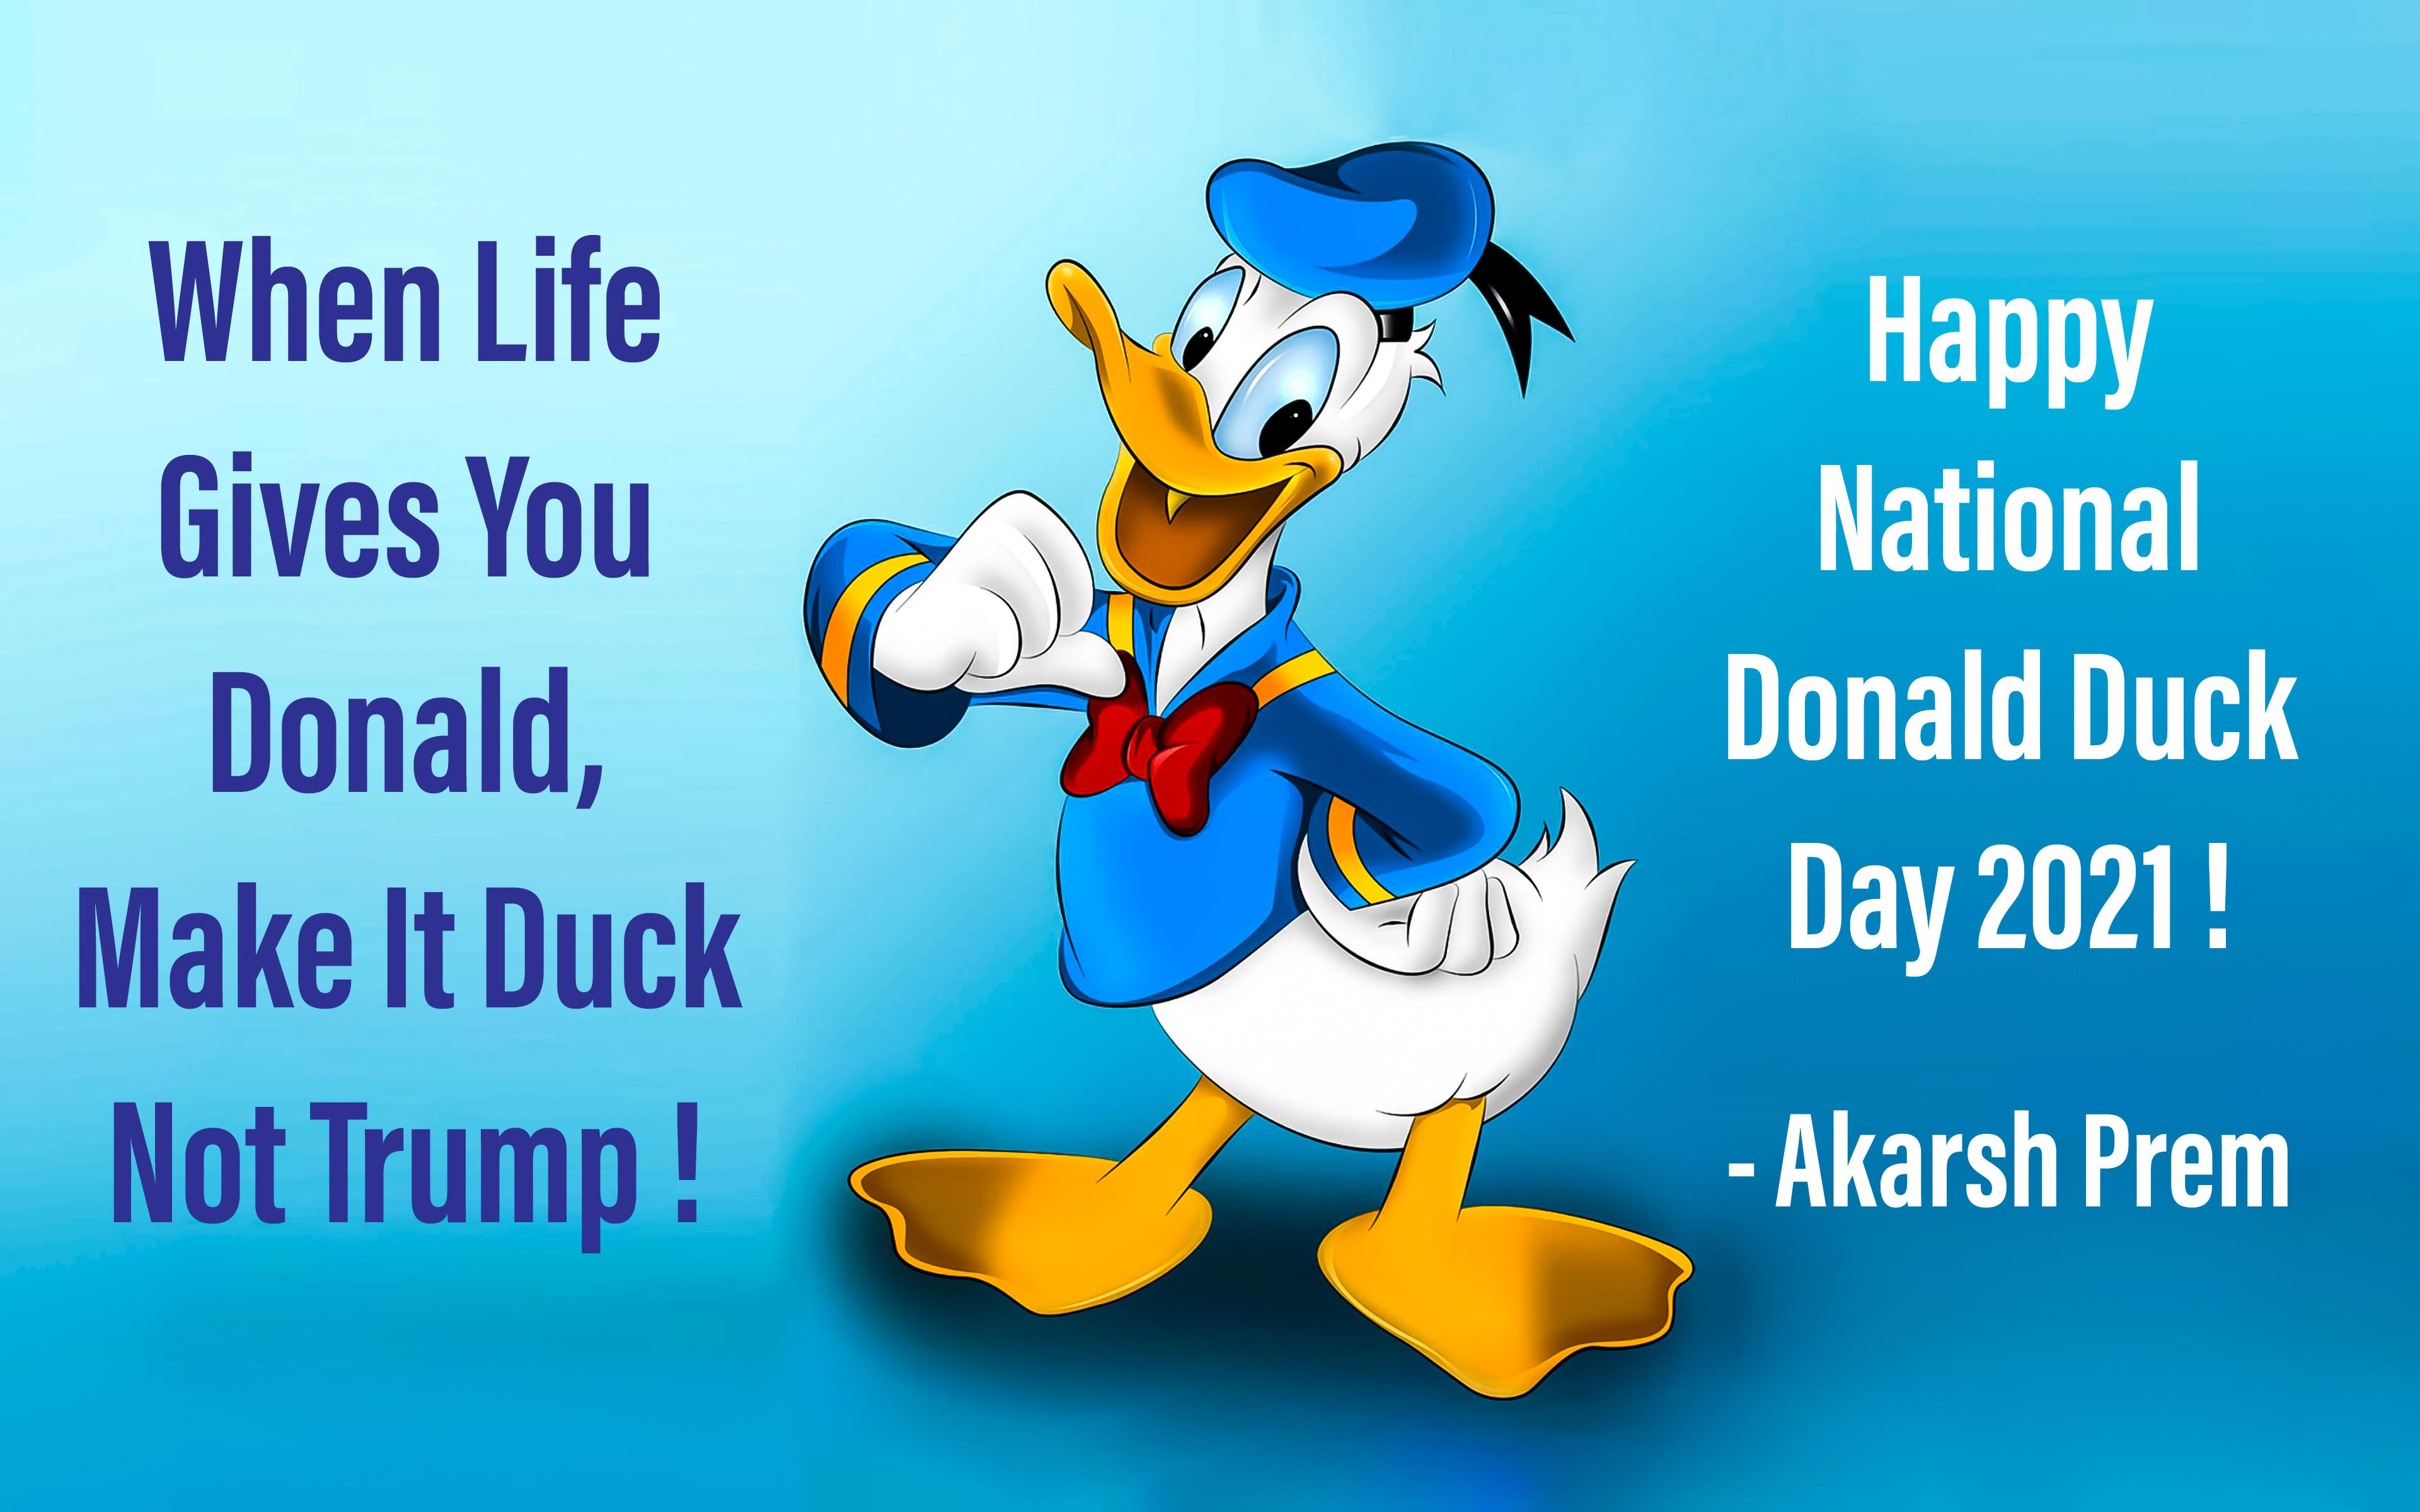 Happy National Donald Duck Day 2021 !